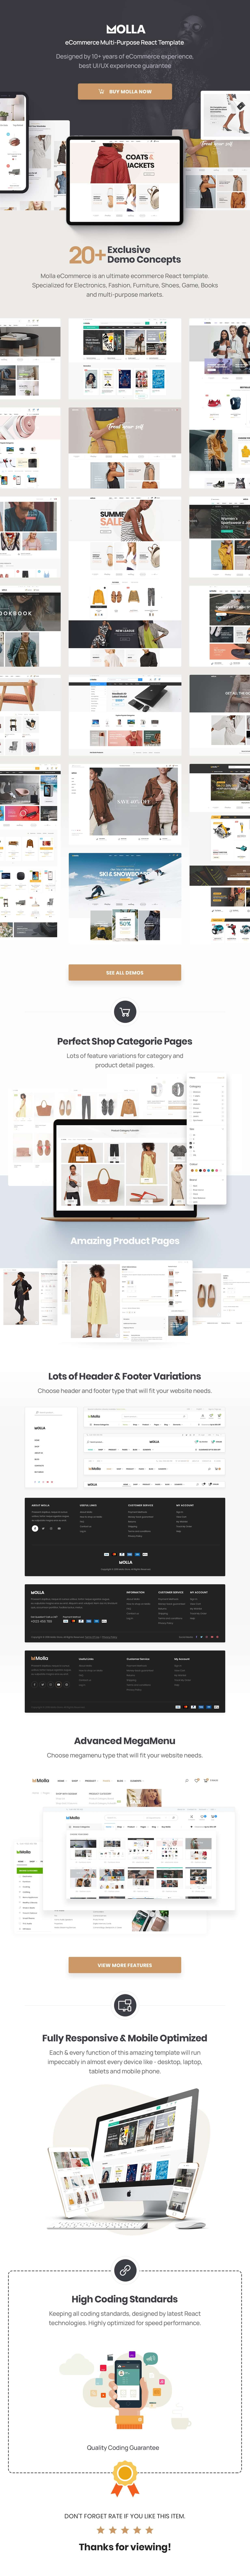 Molla – React eCommerce Template, Gobase64